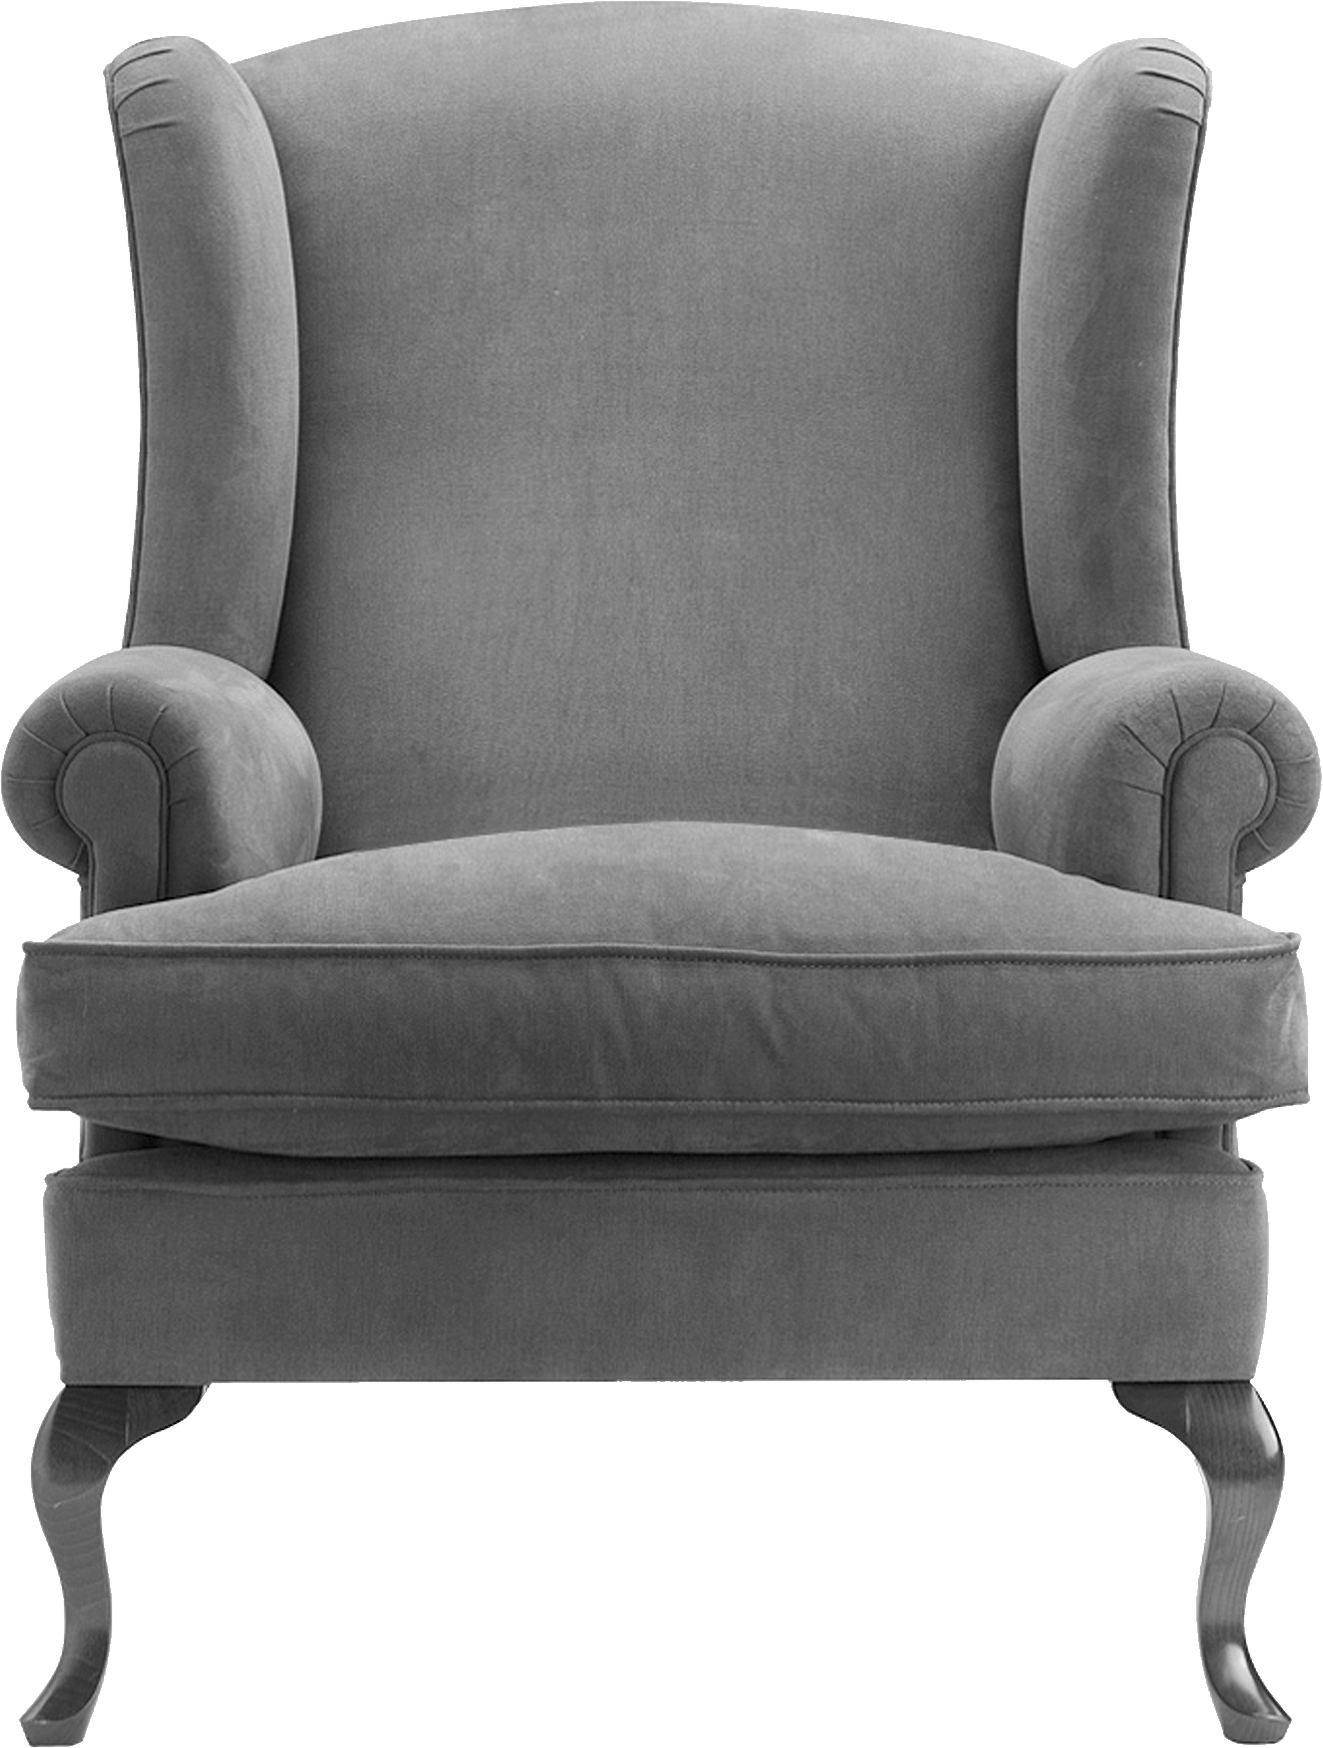 Armchair HD PNG - 93800